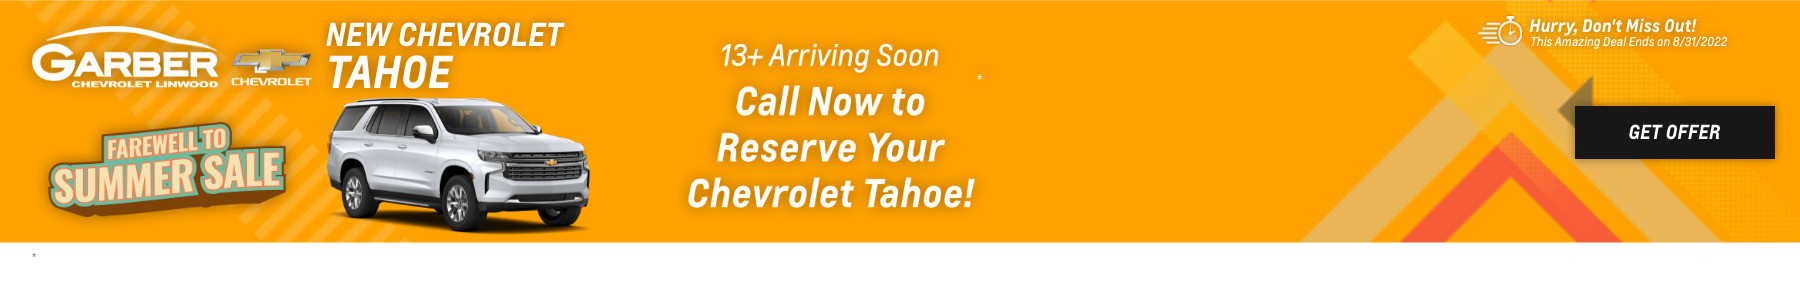 New Chevrolet Tahoe Current Deals and Offers in Linwood, MI